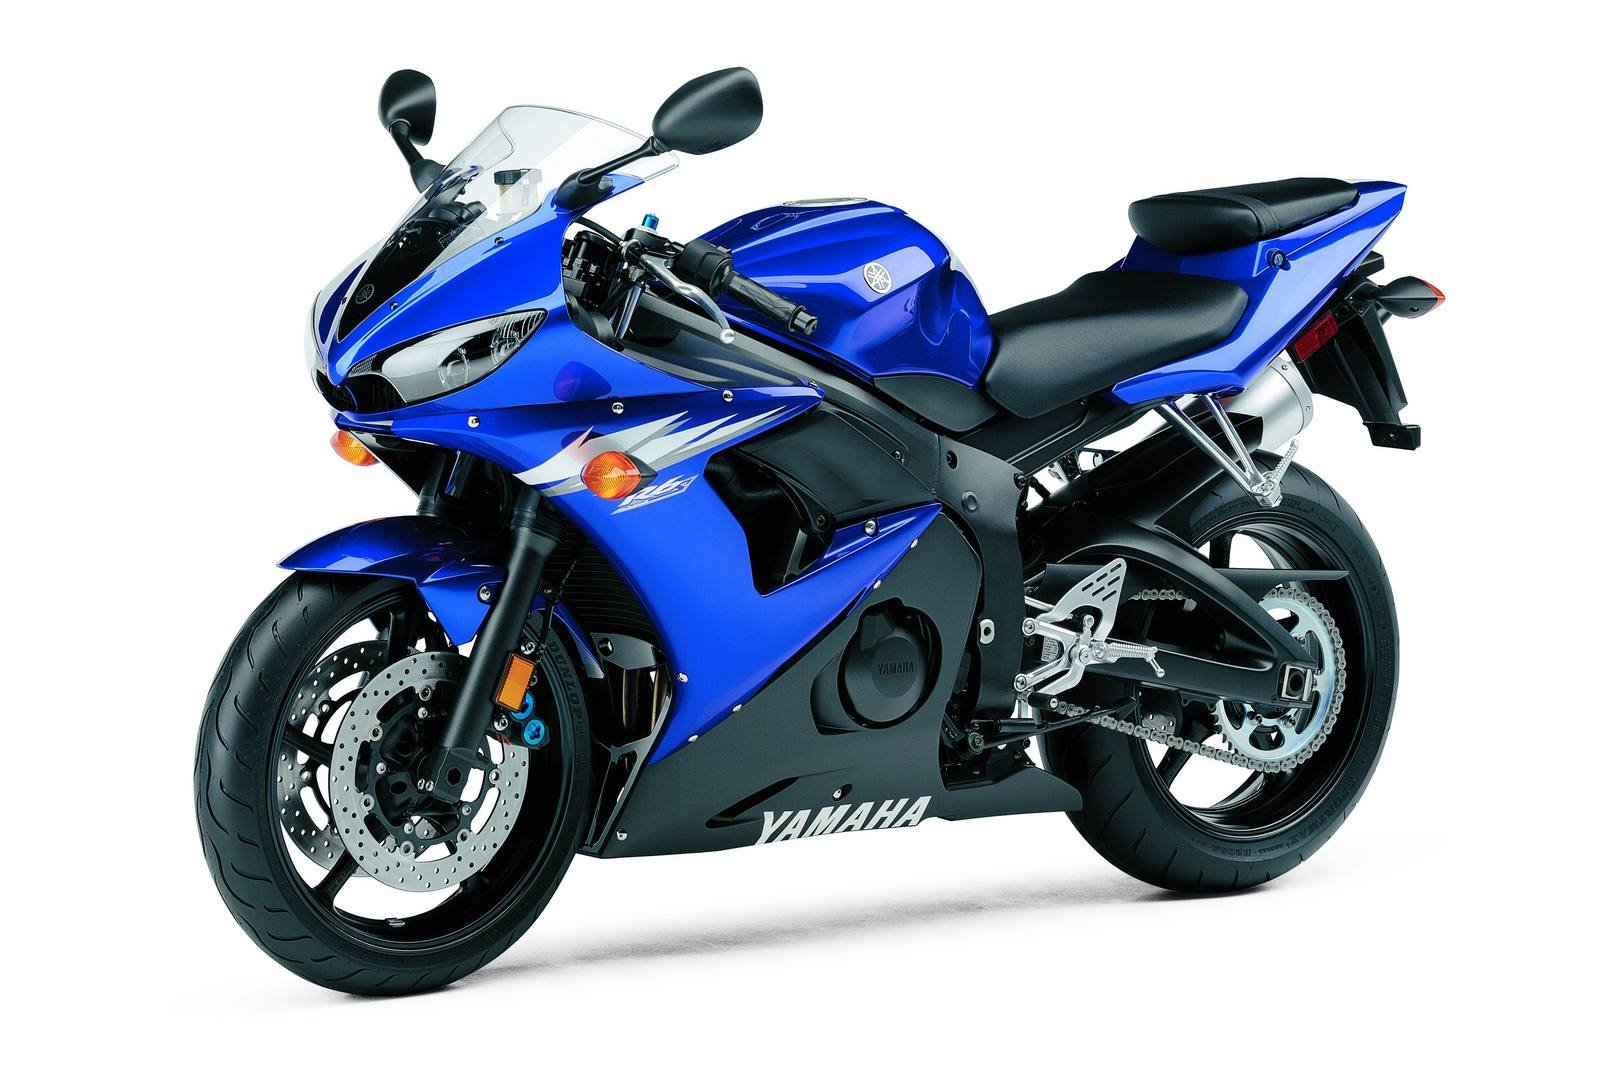 2006 yamaha yzf r6s picture 45967 motorcycle review for 2006 yamaha yzf r6